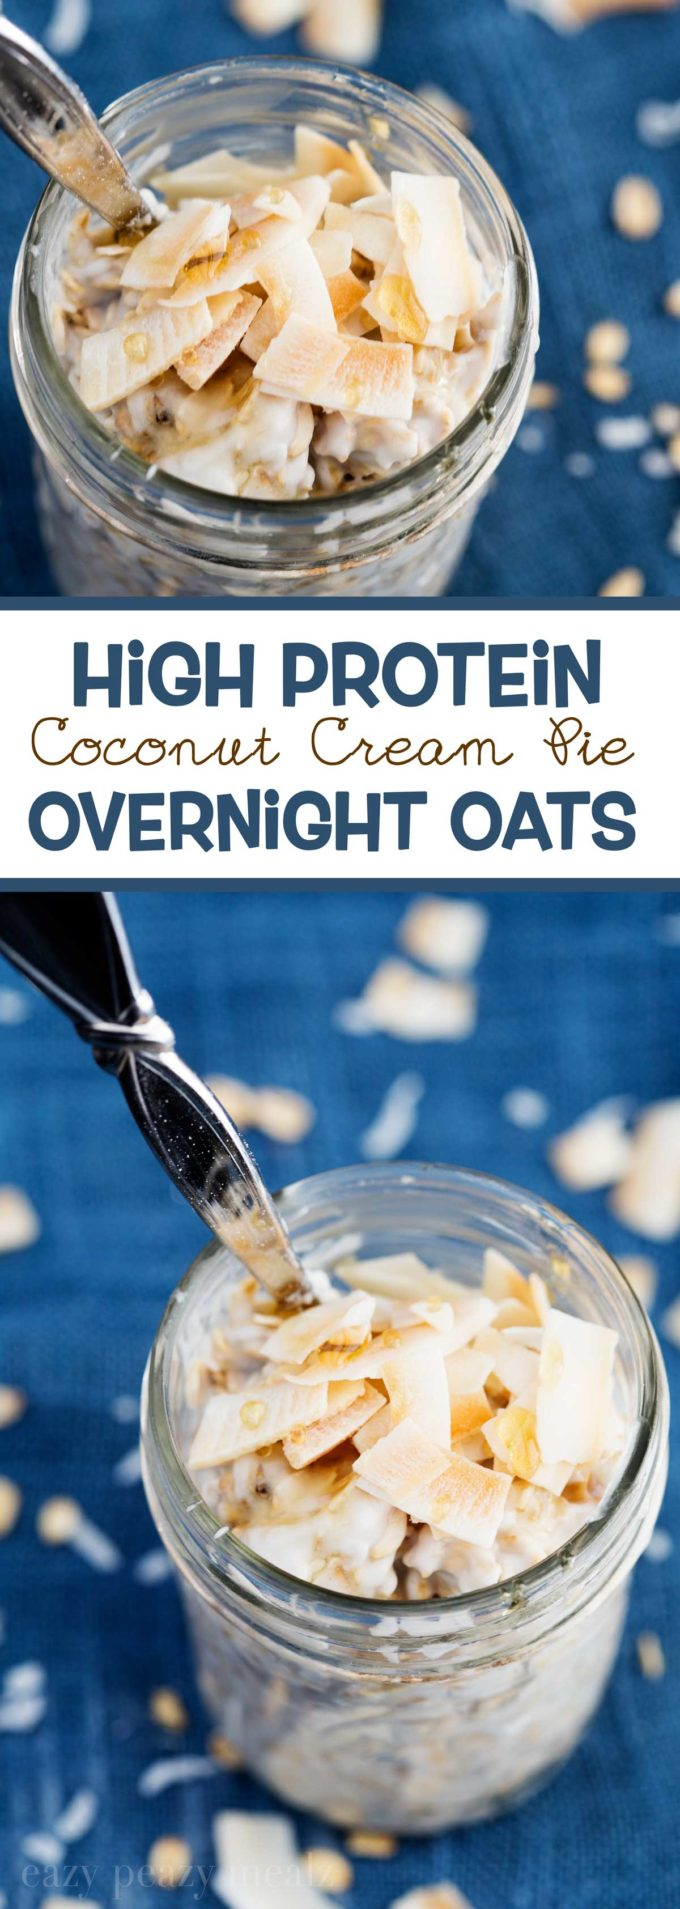 High Protein Coconut Cream Pie Overnight Oats, made with Vital Proteins collagen peptides. #ad